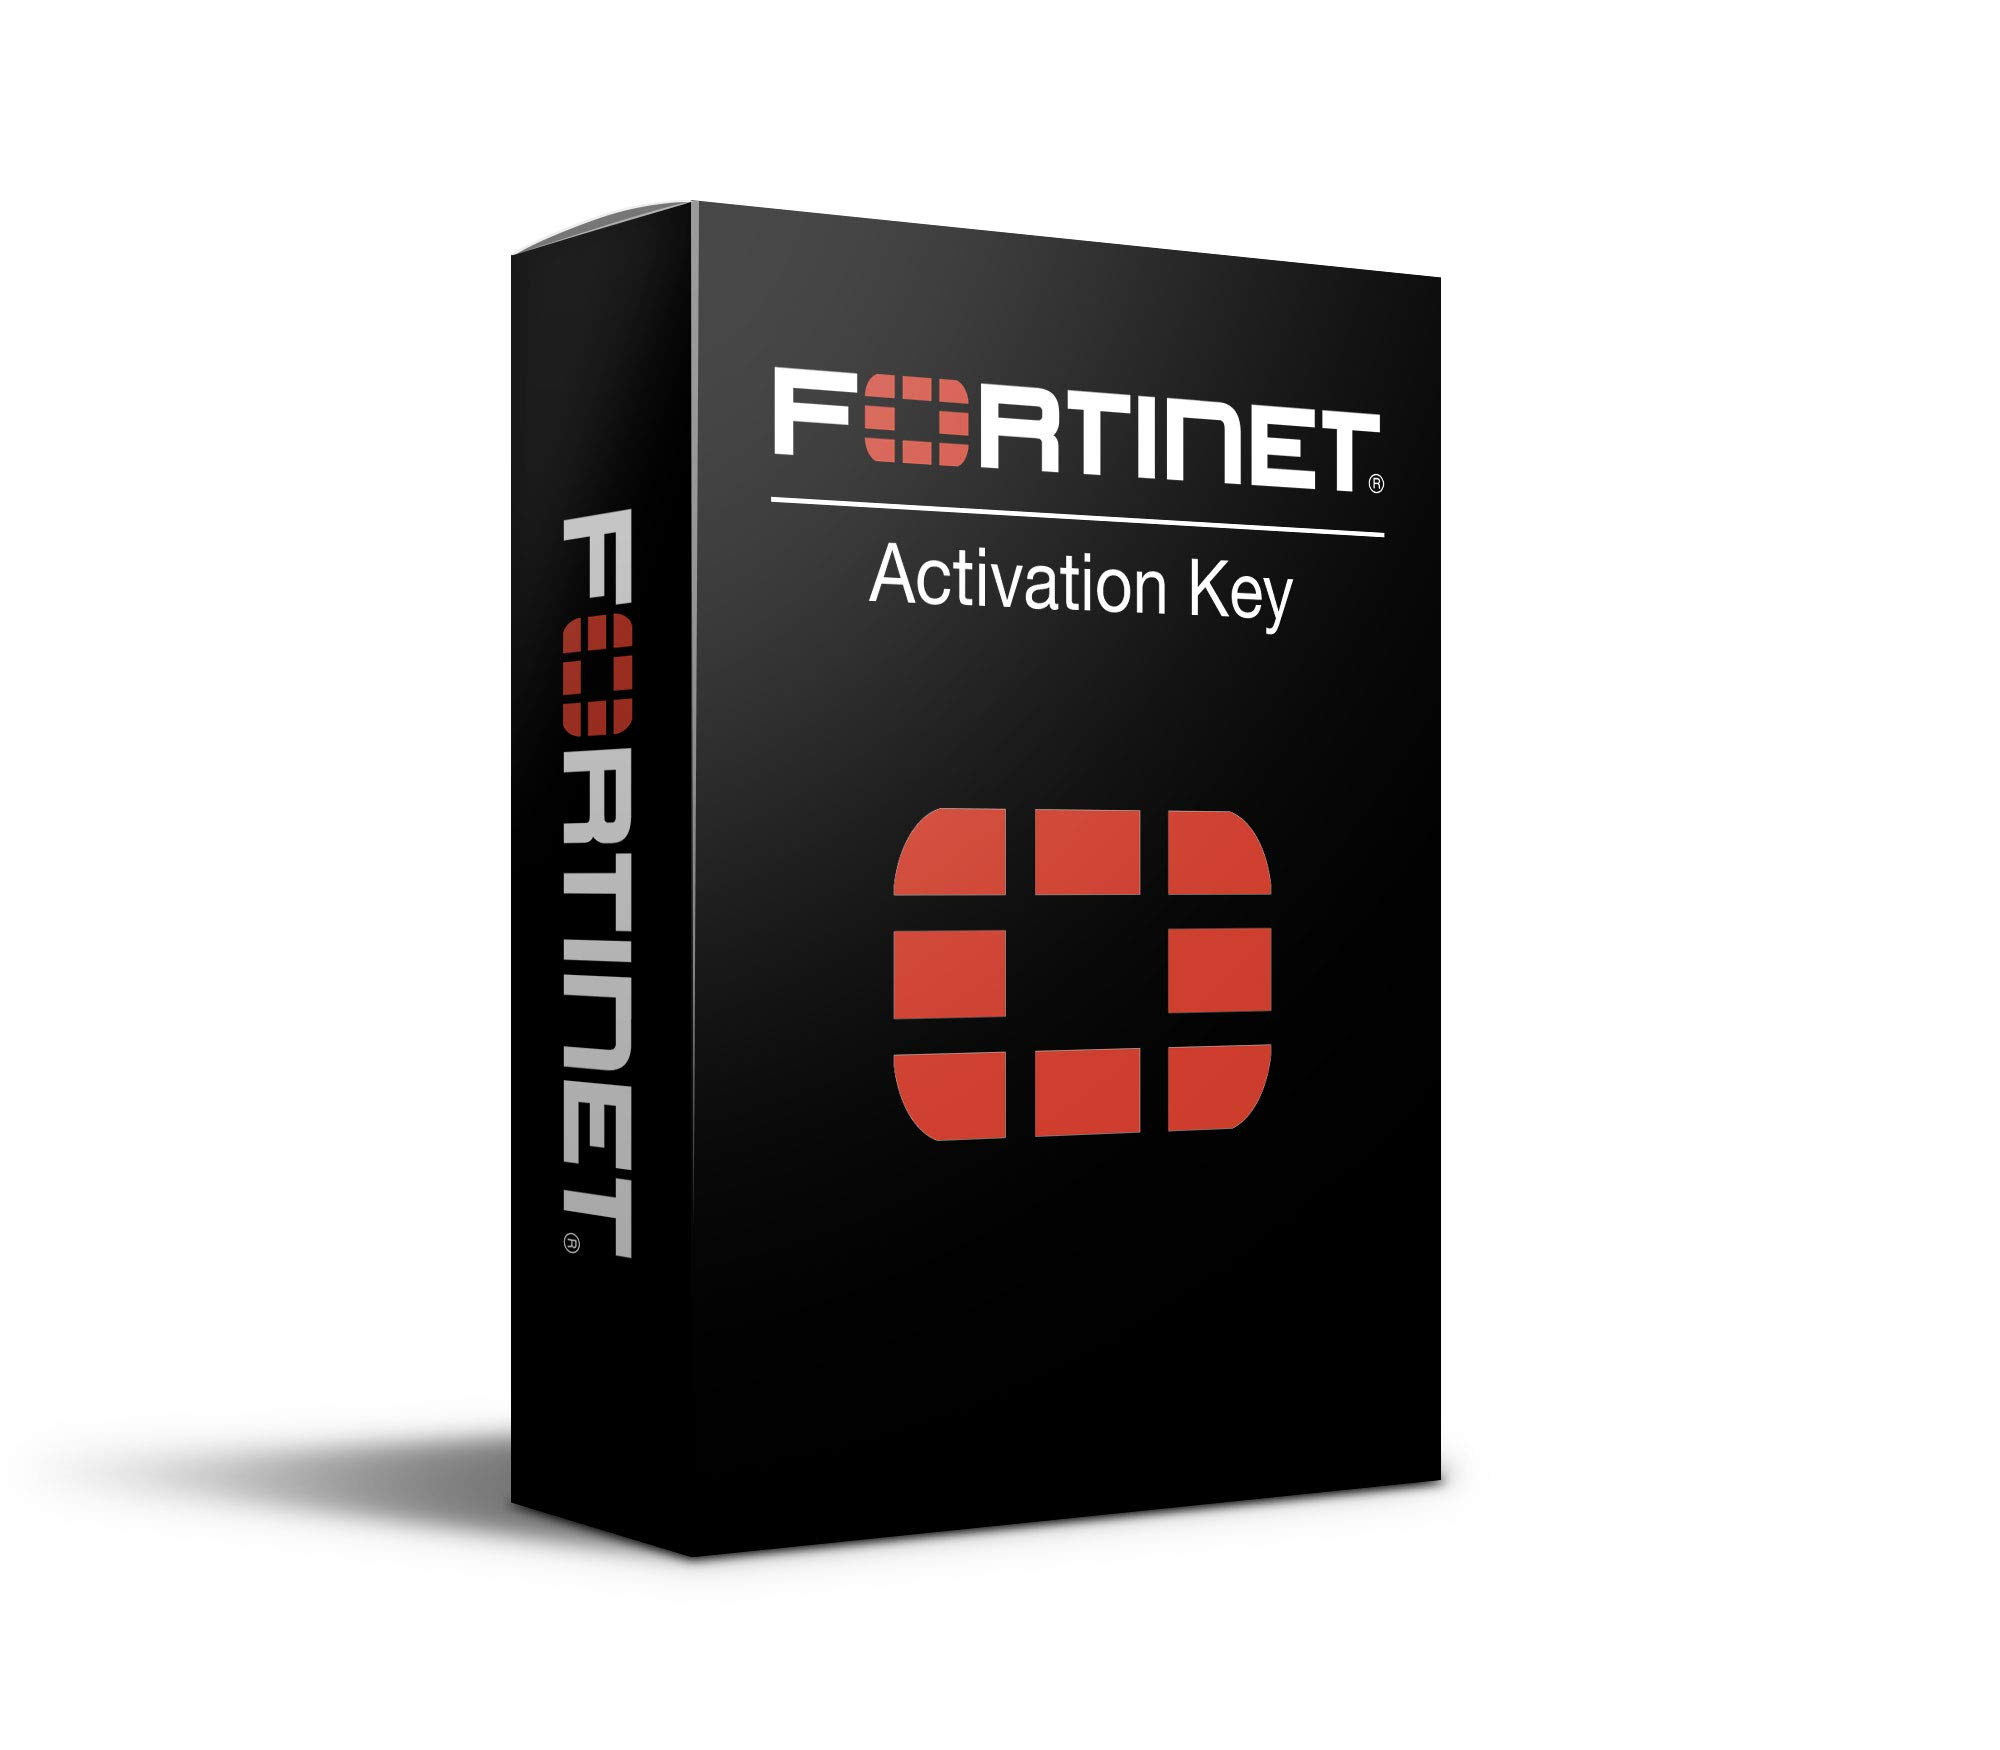 Fortinet AP1000E - AP1020E 1 Year 24x7 FortiCare Contract FC-10-P1K2E-247-02-12 by FORTINET